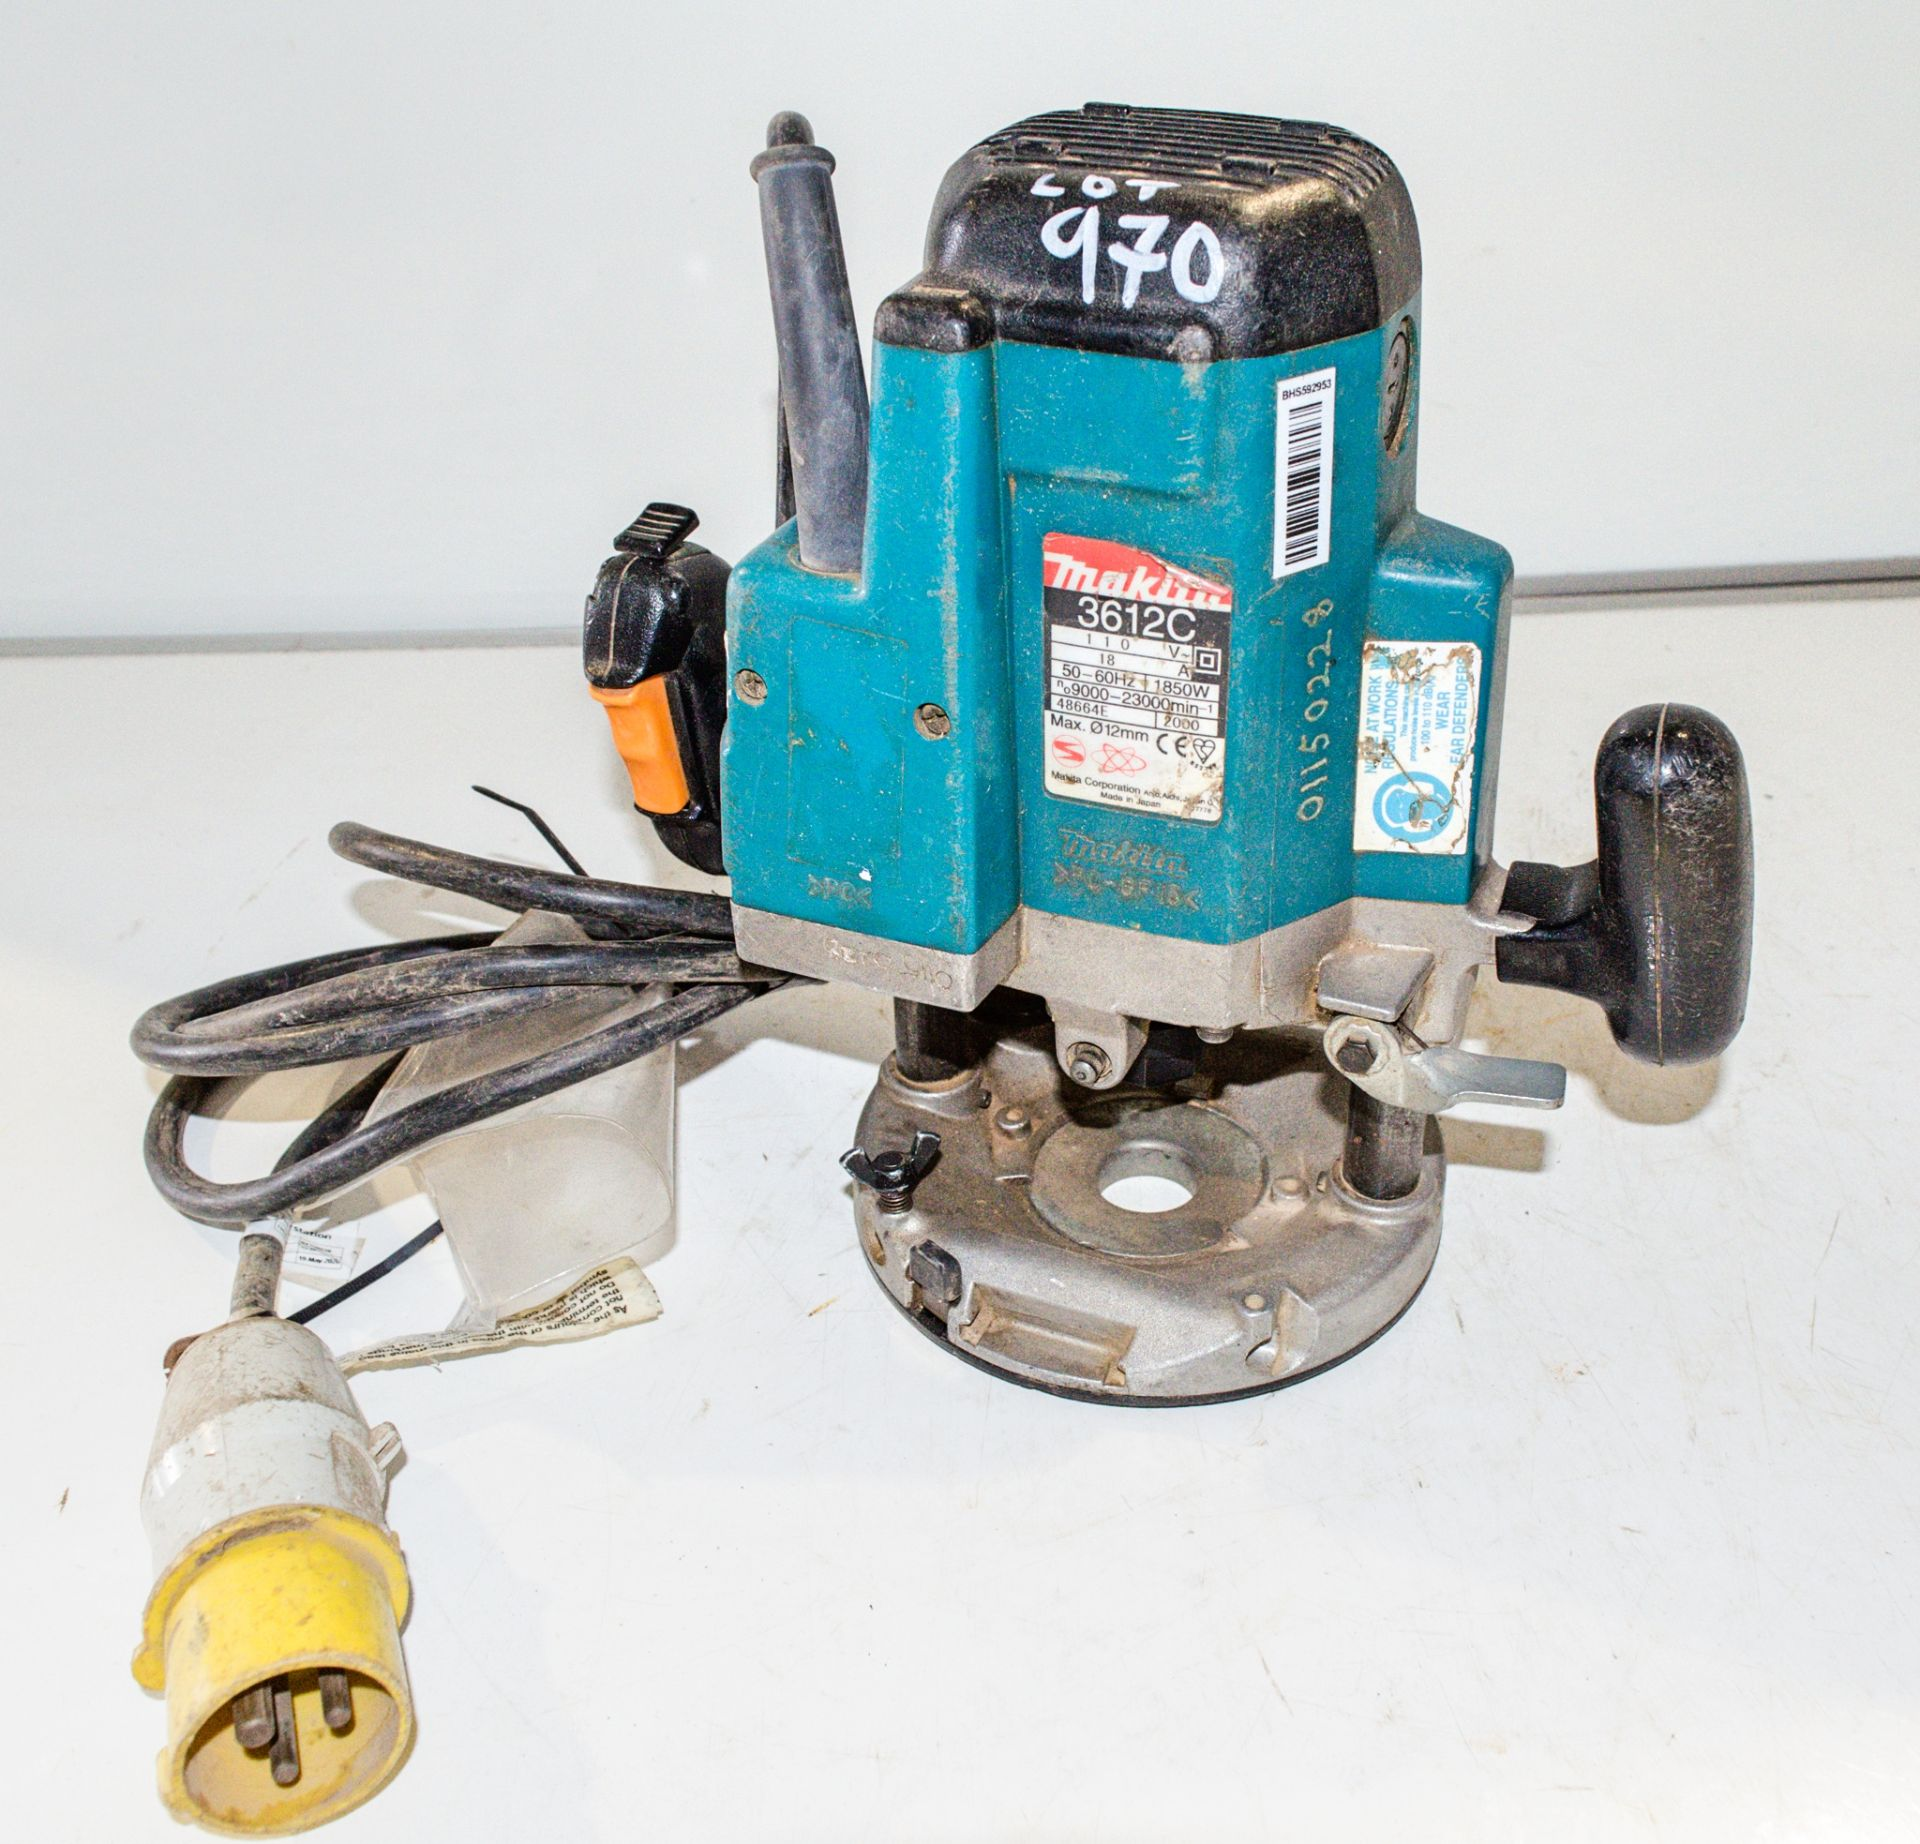 Lot 970 - Makita 3612C 110v router